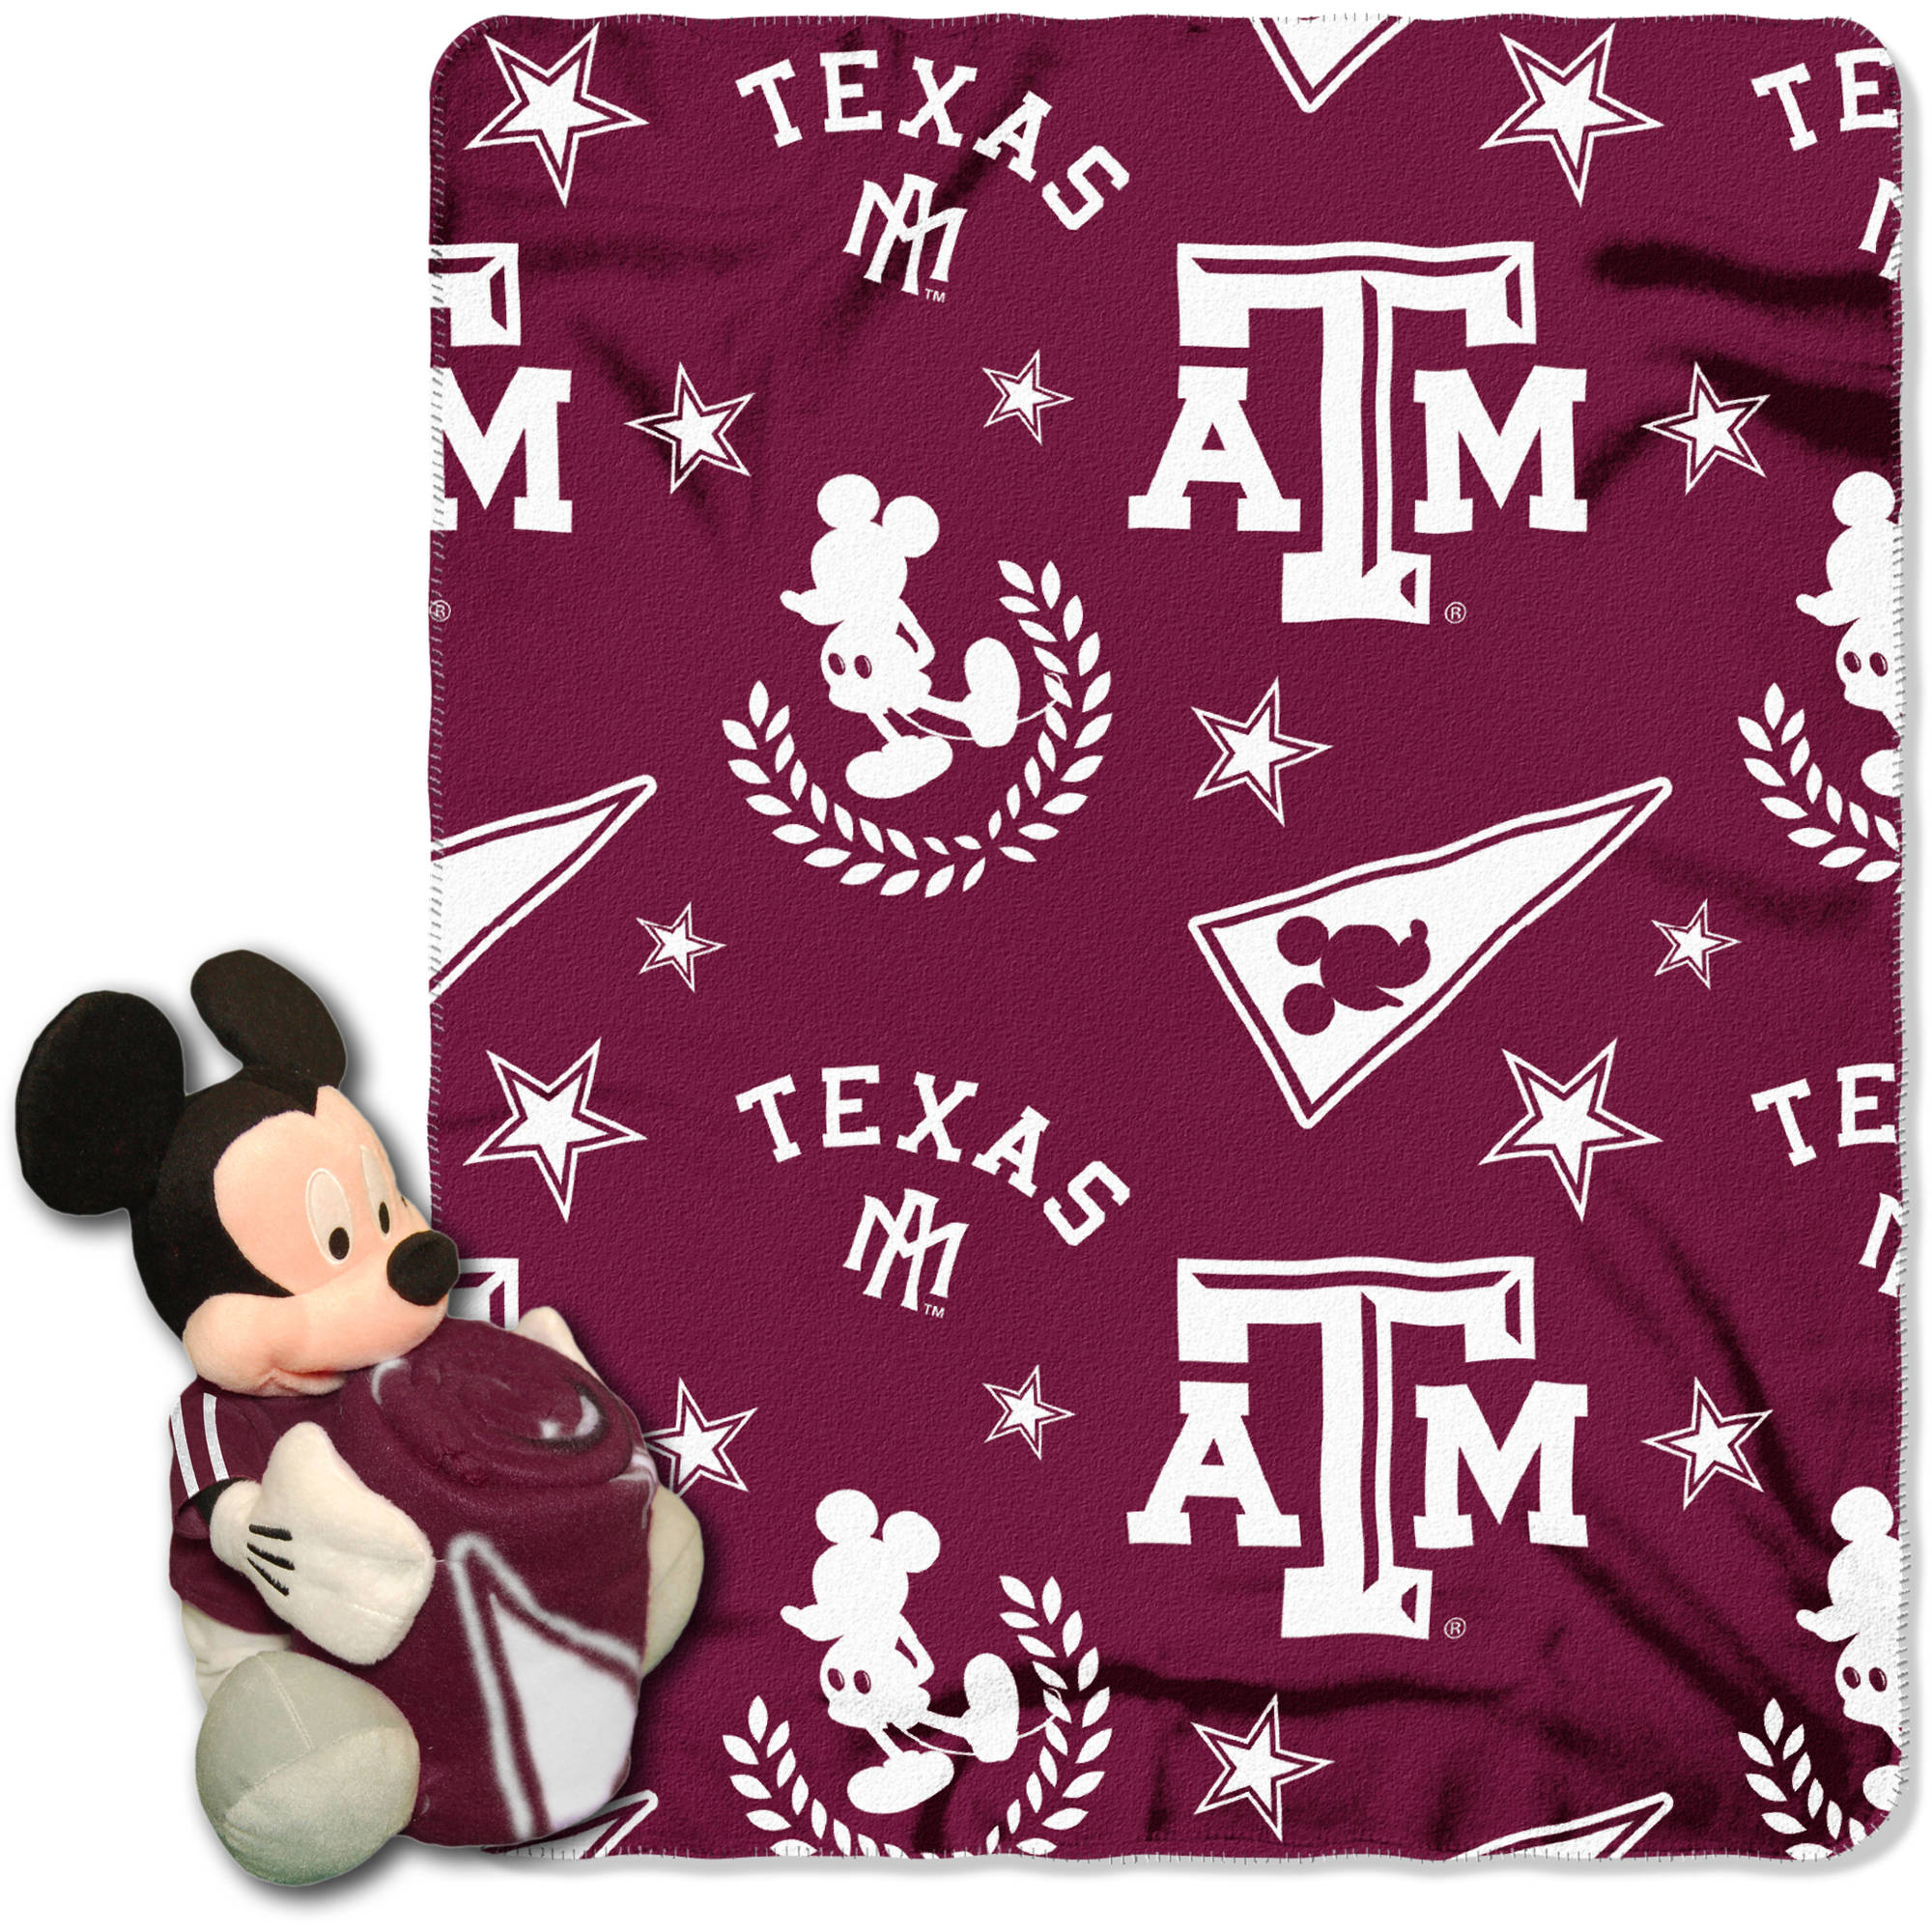 "Official NCAA and Disney Cobrand Texas A&M Aggies Mickey Mouse Hugger Character Shaped Pillow and 40""x 50"" Fleece Throw Set"